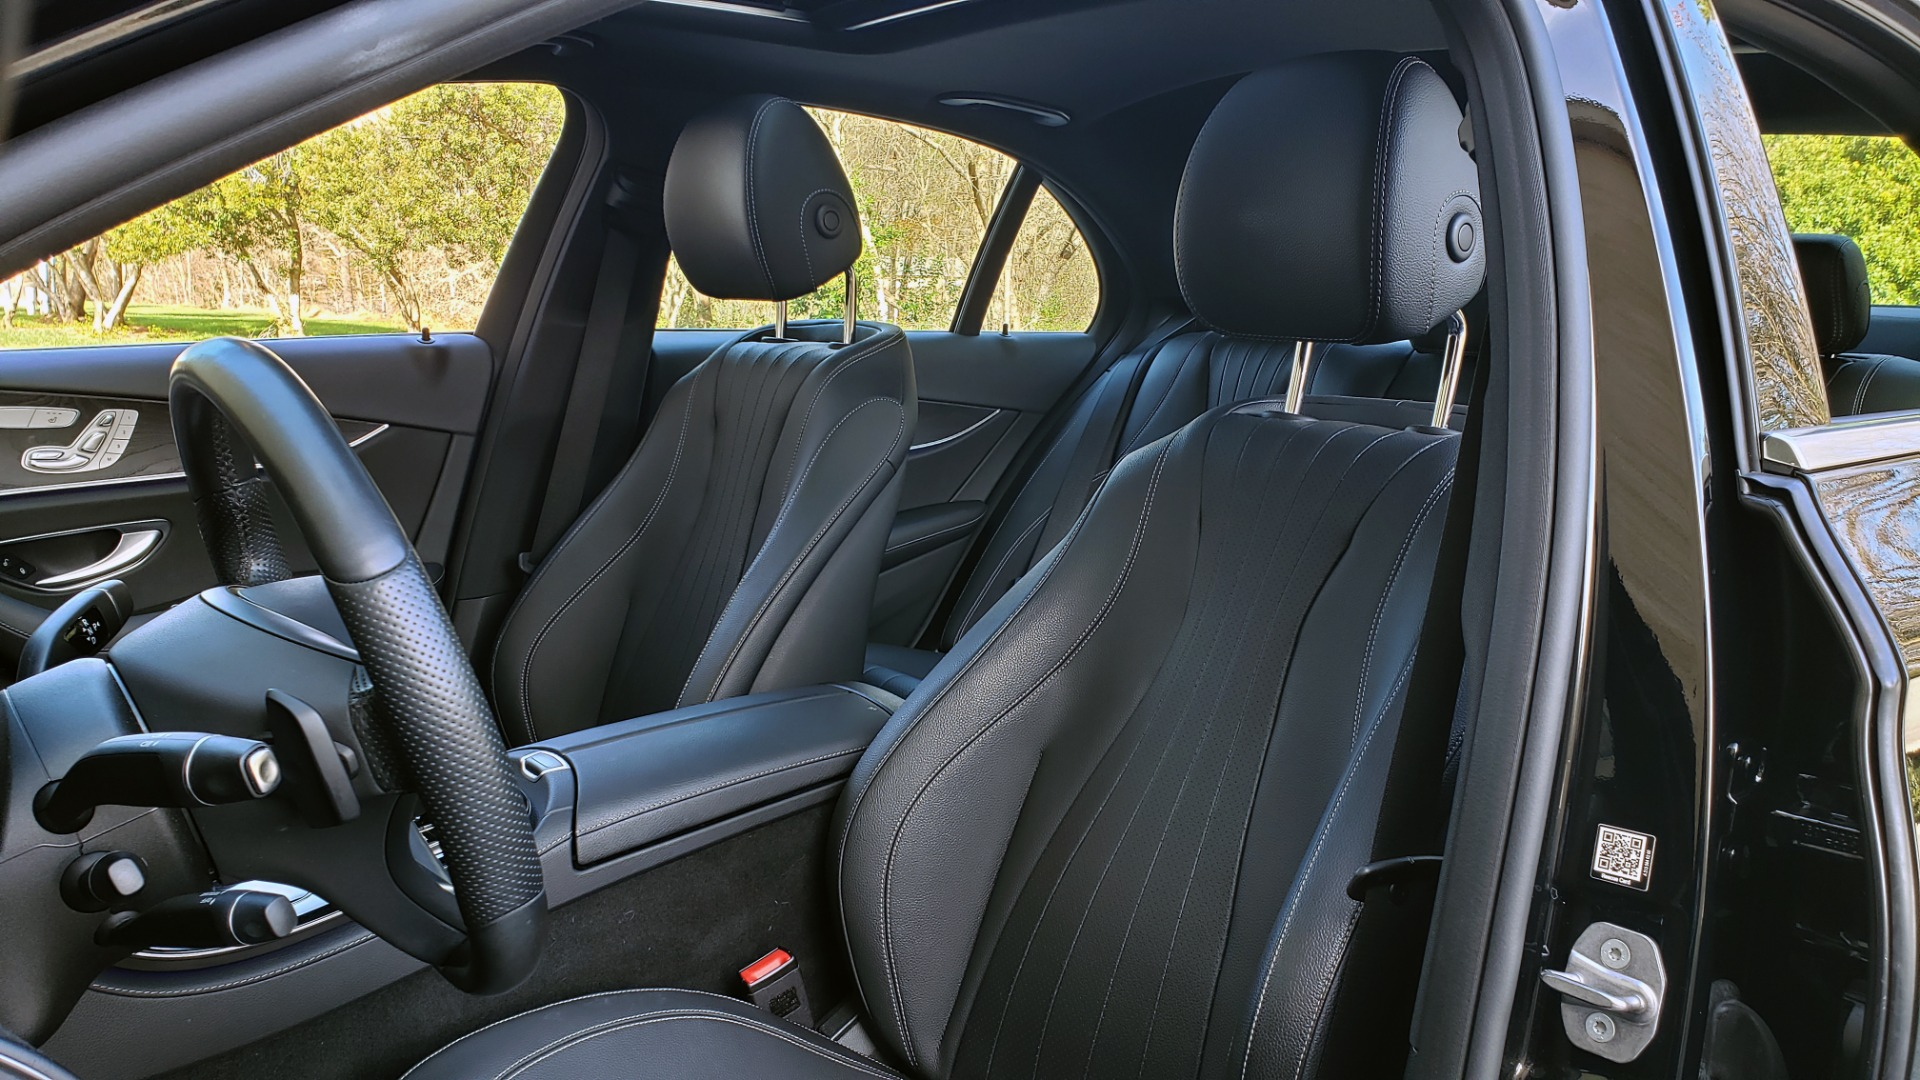 Used 2017 Mercedes-Benz E-CLASS E 300 PREMIUM / NAV / SUNROOF / BURMESTER / HTD STS / REARVIEW for sale Sold at Formula Imports in Charlotte NC 28227 38